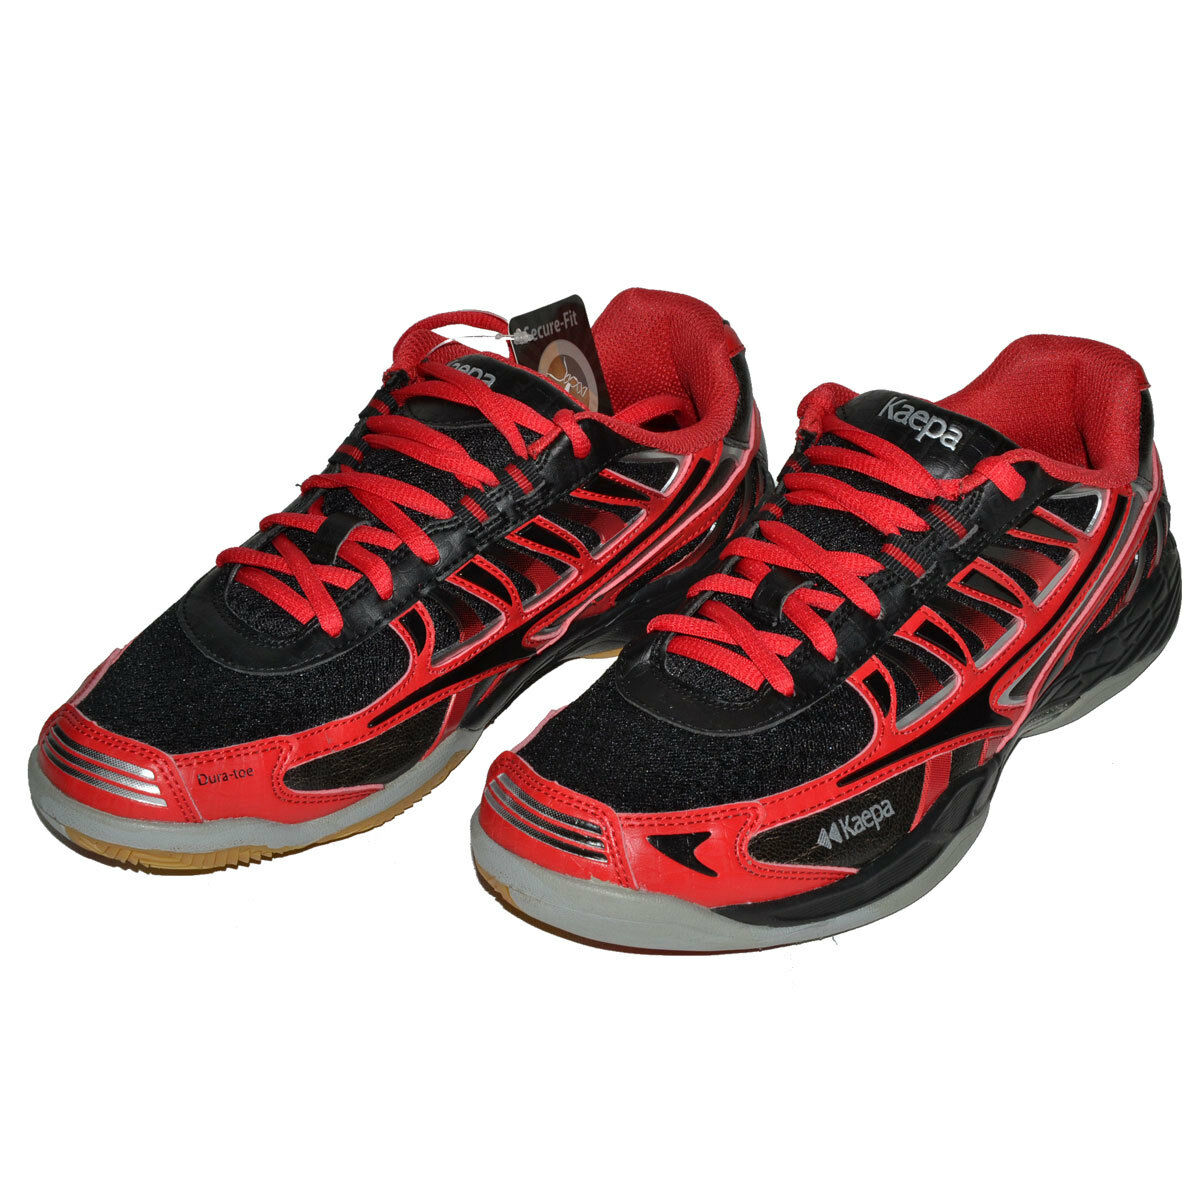 Kaepa Sneakers Heat Damenschuhe ROT Schuhes Volleyball Schuhes ROT 40a345